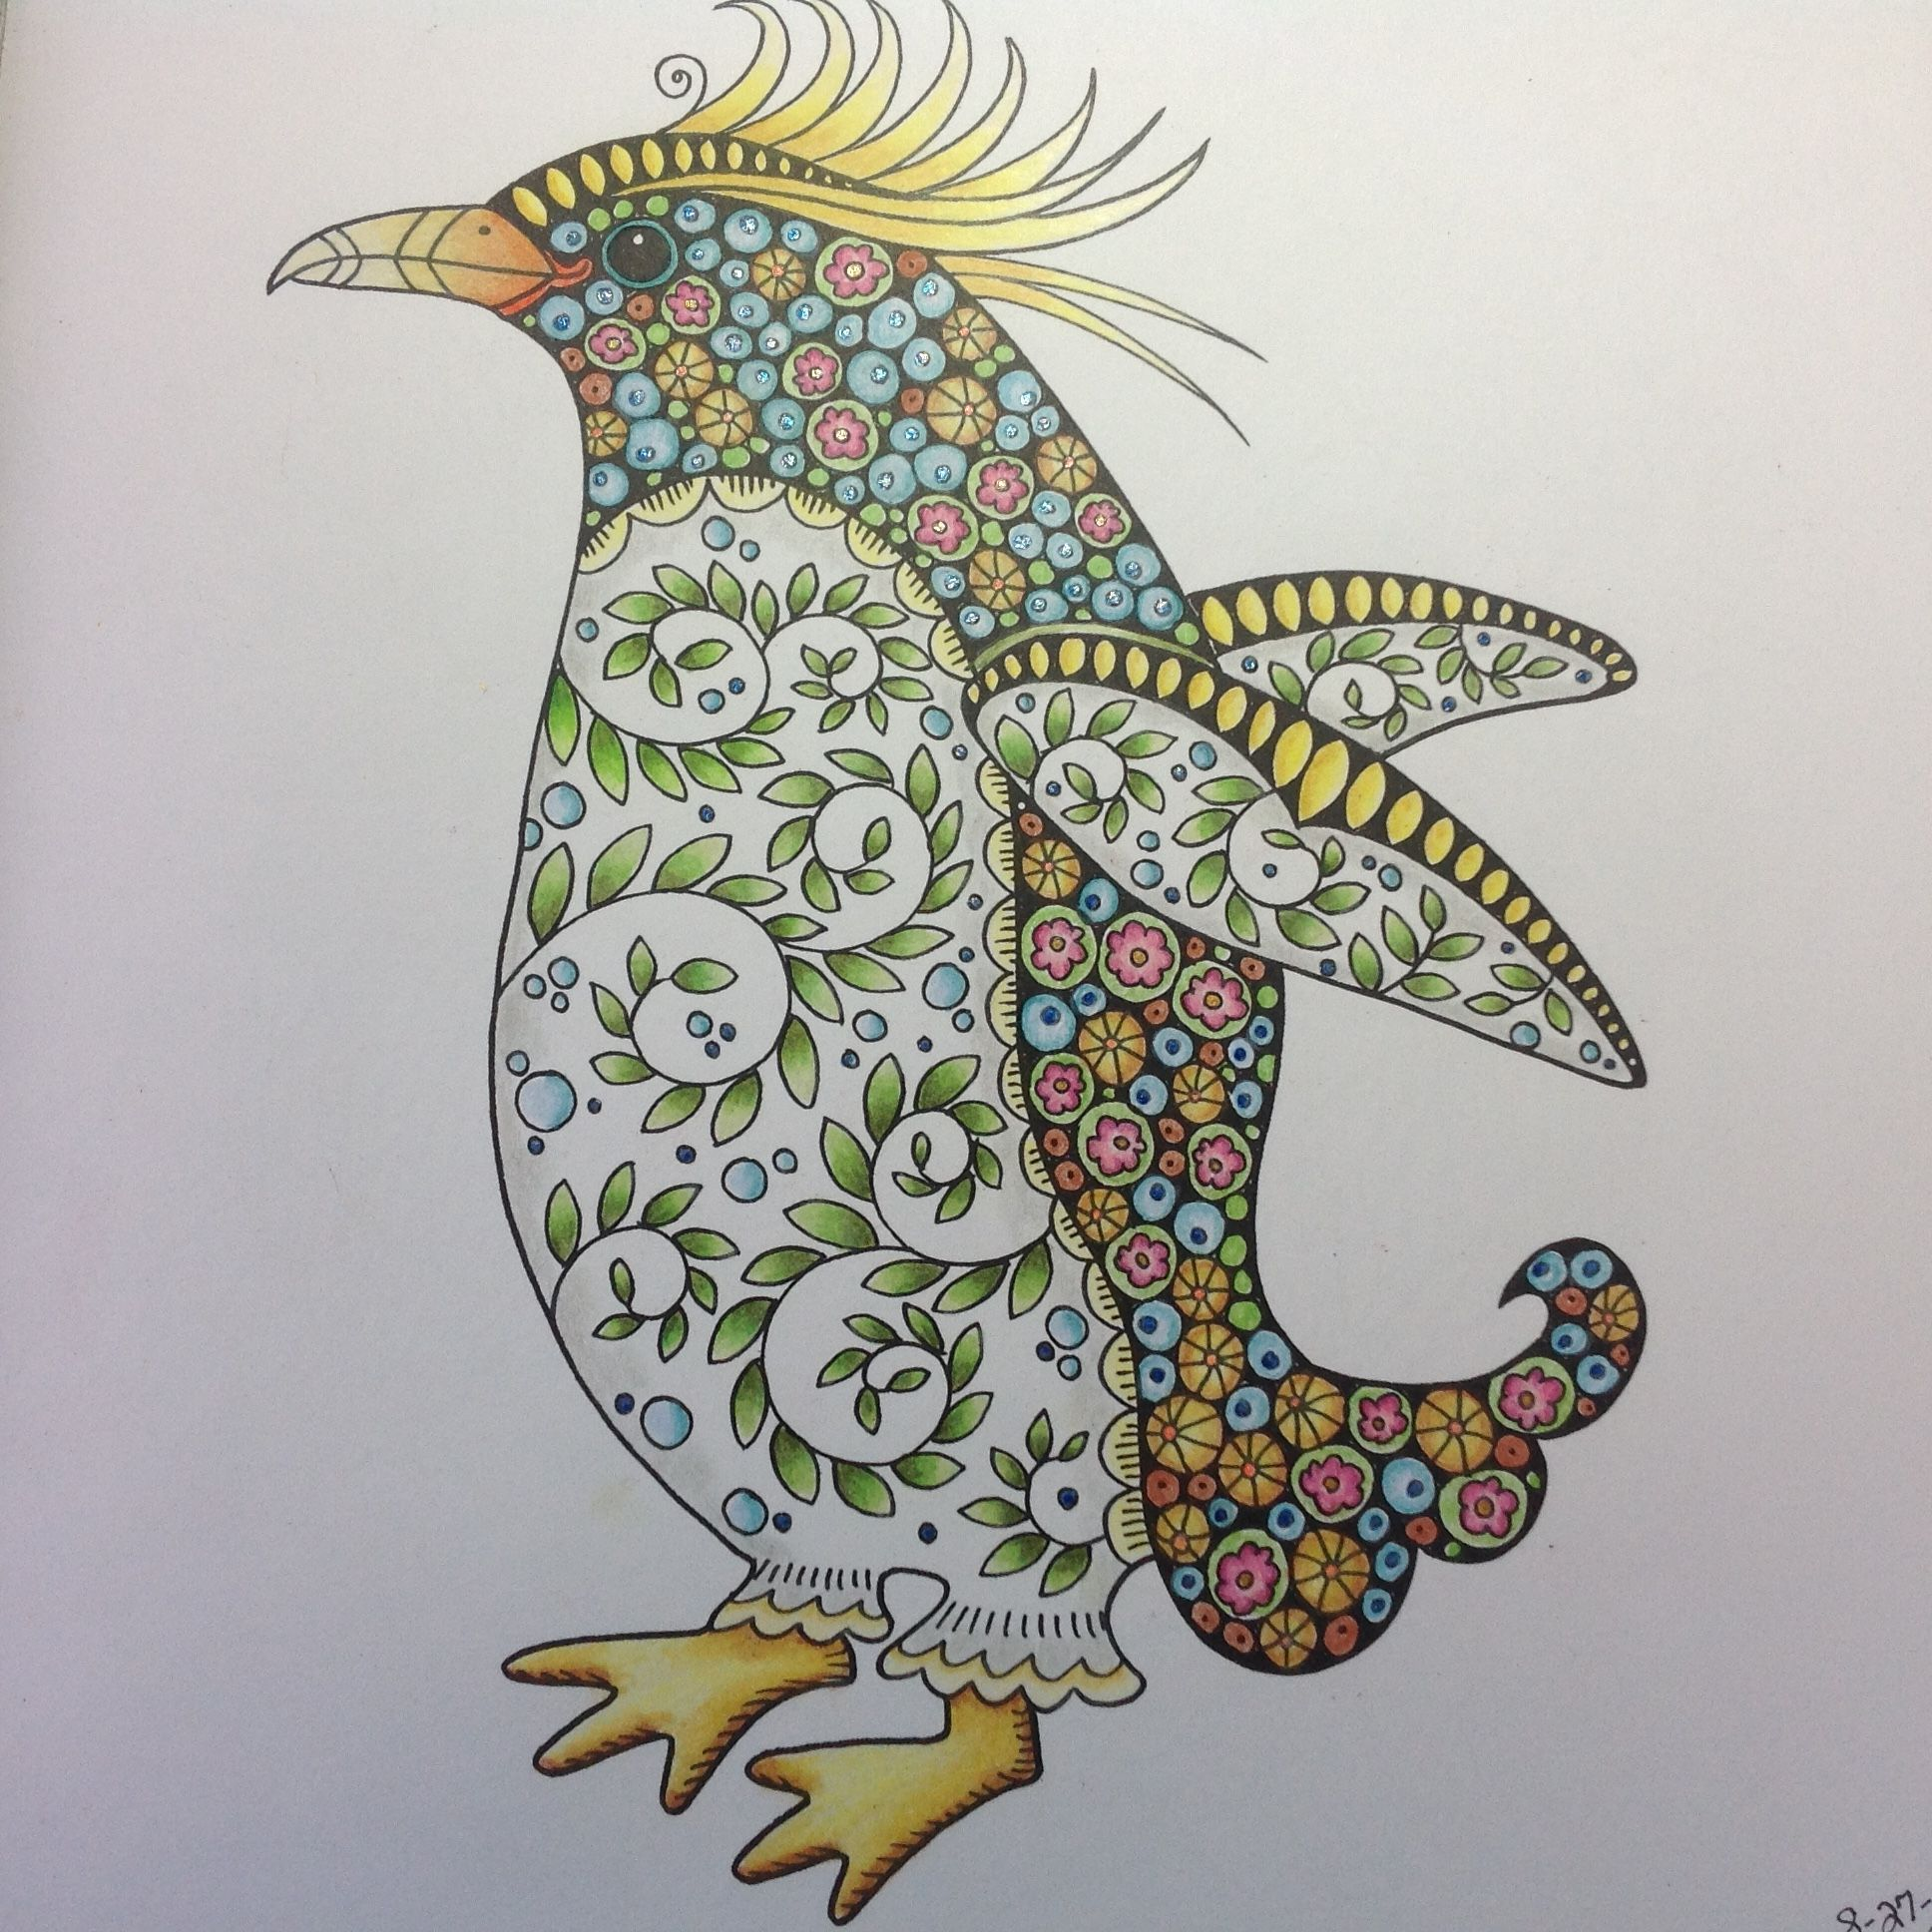 Penguin from wonders of creation coloring book | Coloring 5 ...